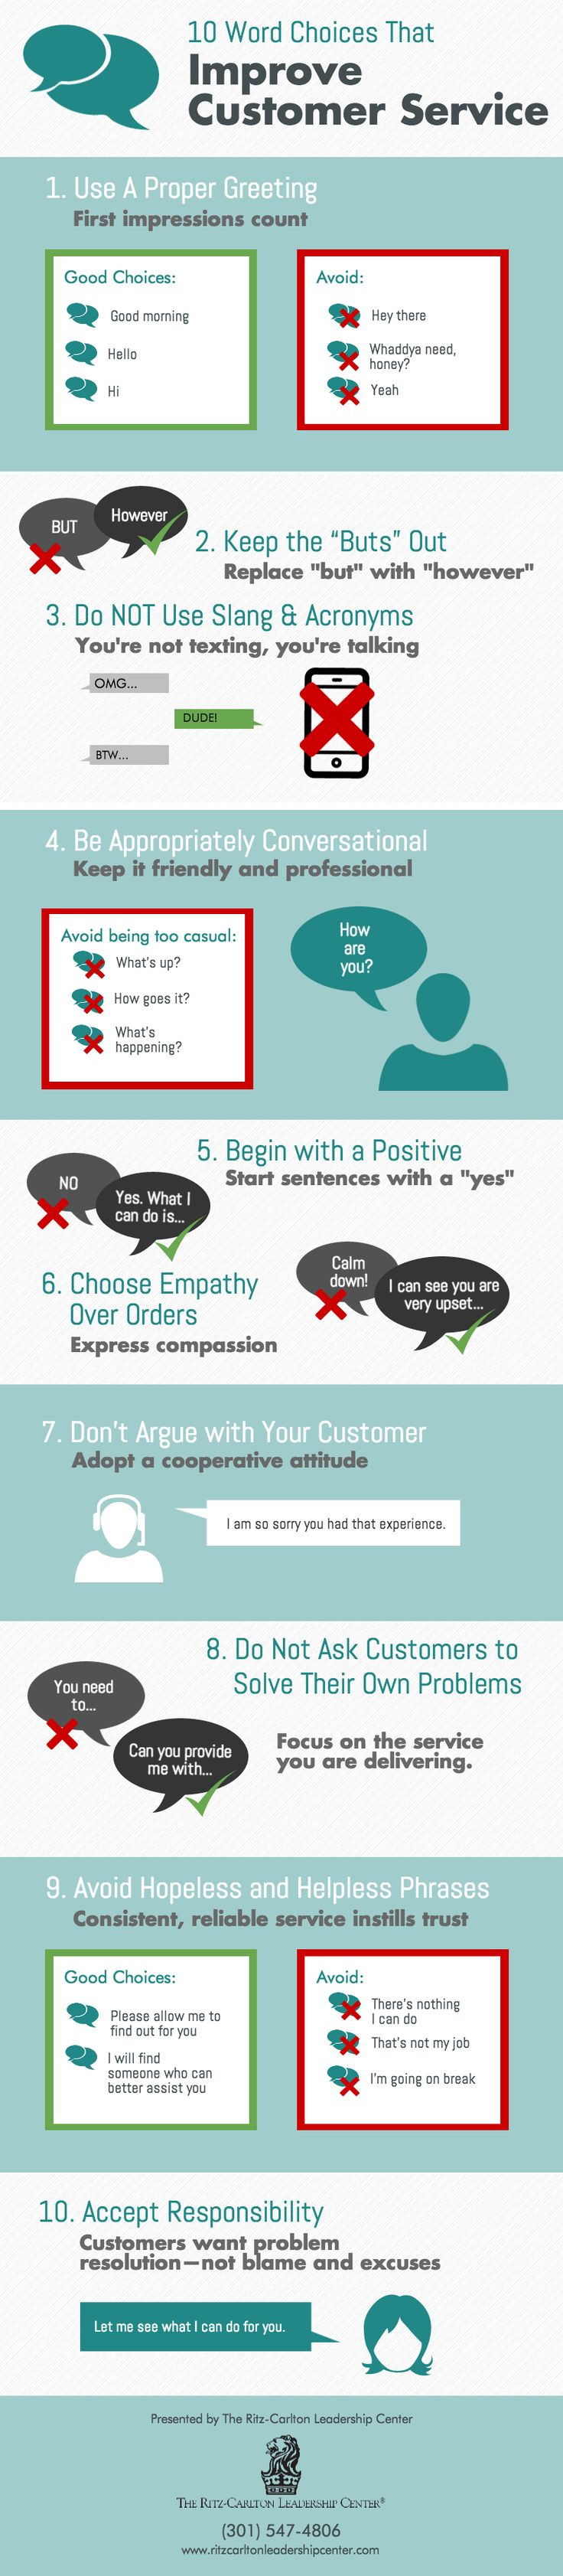 best ideas about customer service customer this customer service infographic from the ritz carlton leadership center offers 10 word choices that will help you improve customer service skills more